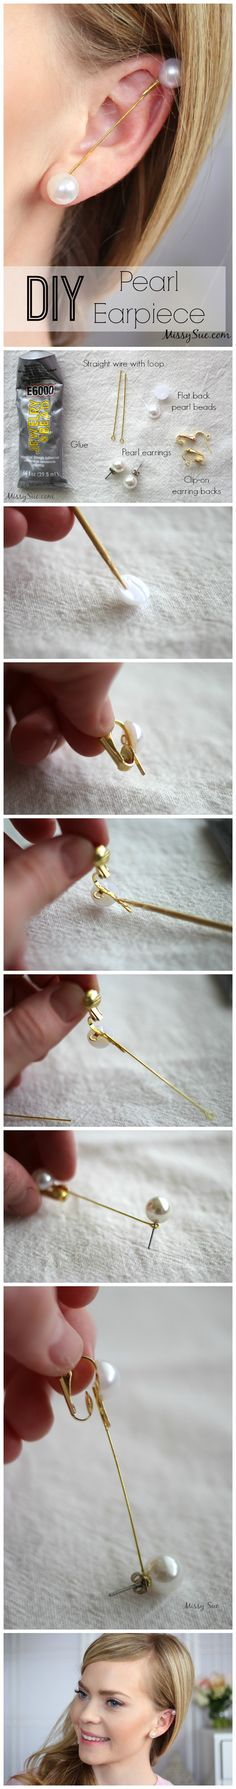 #Diy #Pearl #Earpiece #Tutorial